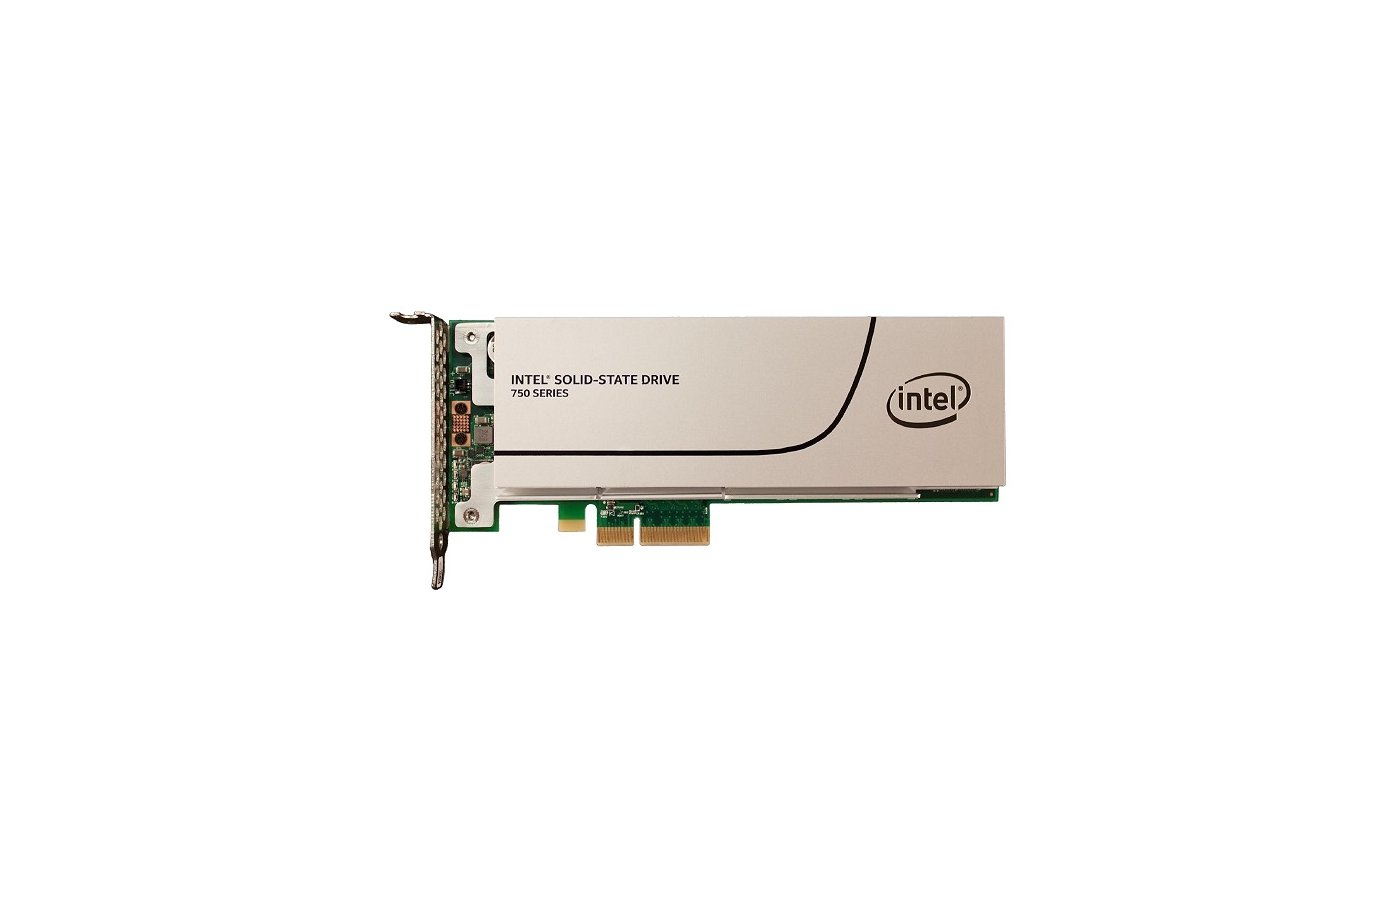 SSD жесткий диск Intel Original PCI-E 400Gb SSDPEDMW400G4X1 750 Series